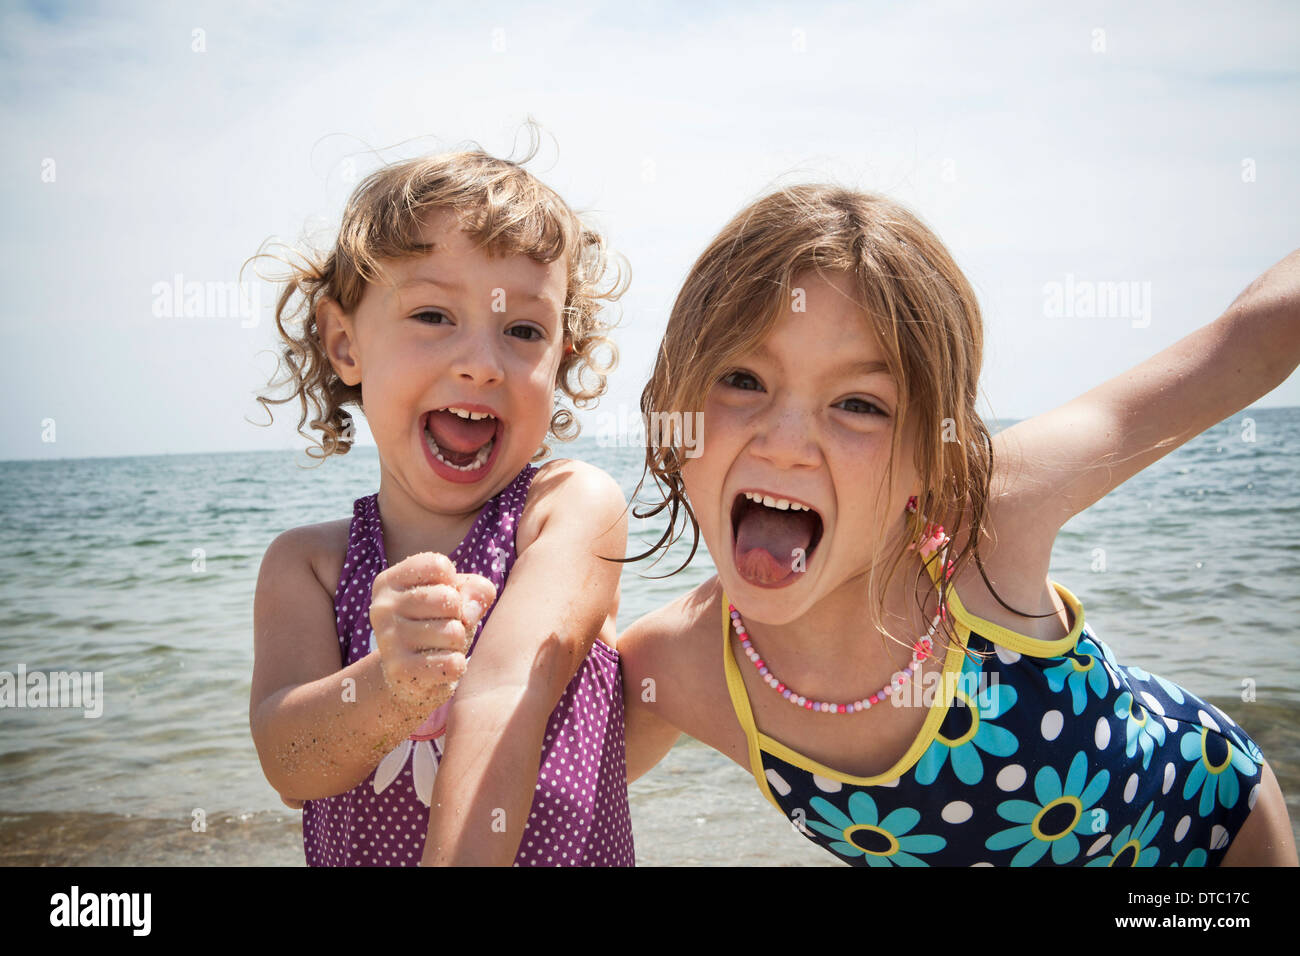 Portrait de deux sœurs pulling faces sur plage à Falmouth, Massachusetts, USA Photo Stock